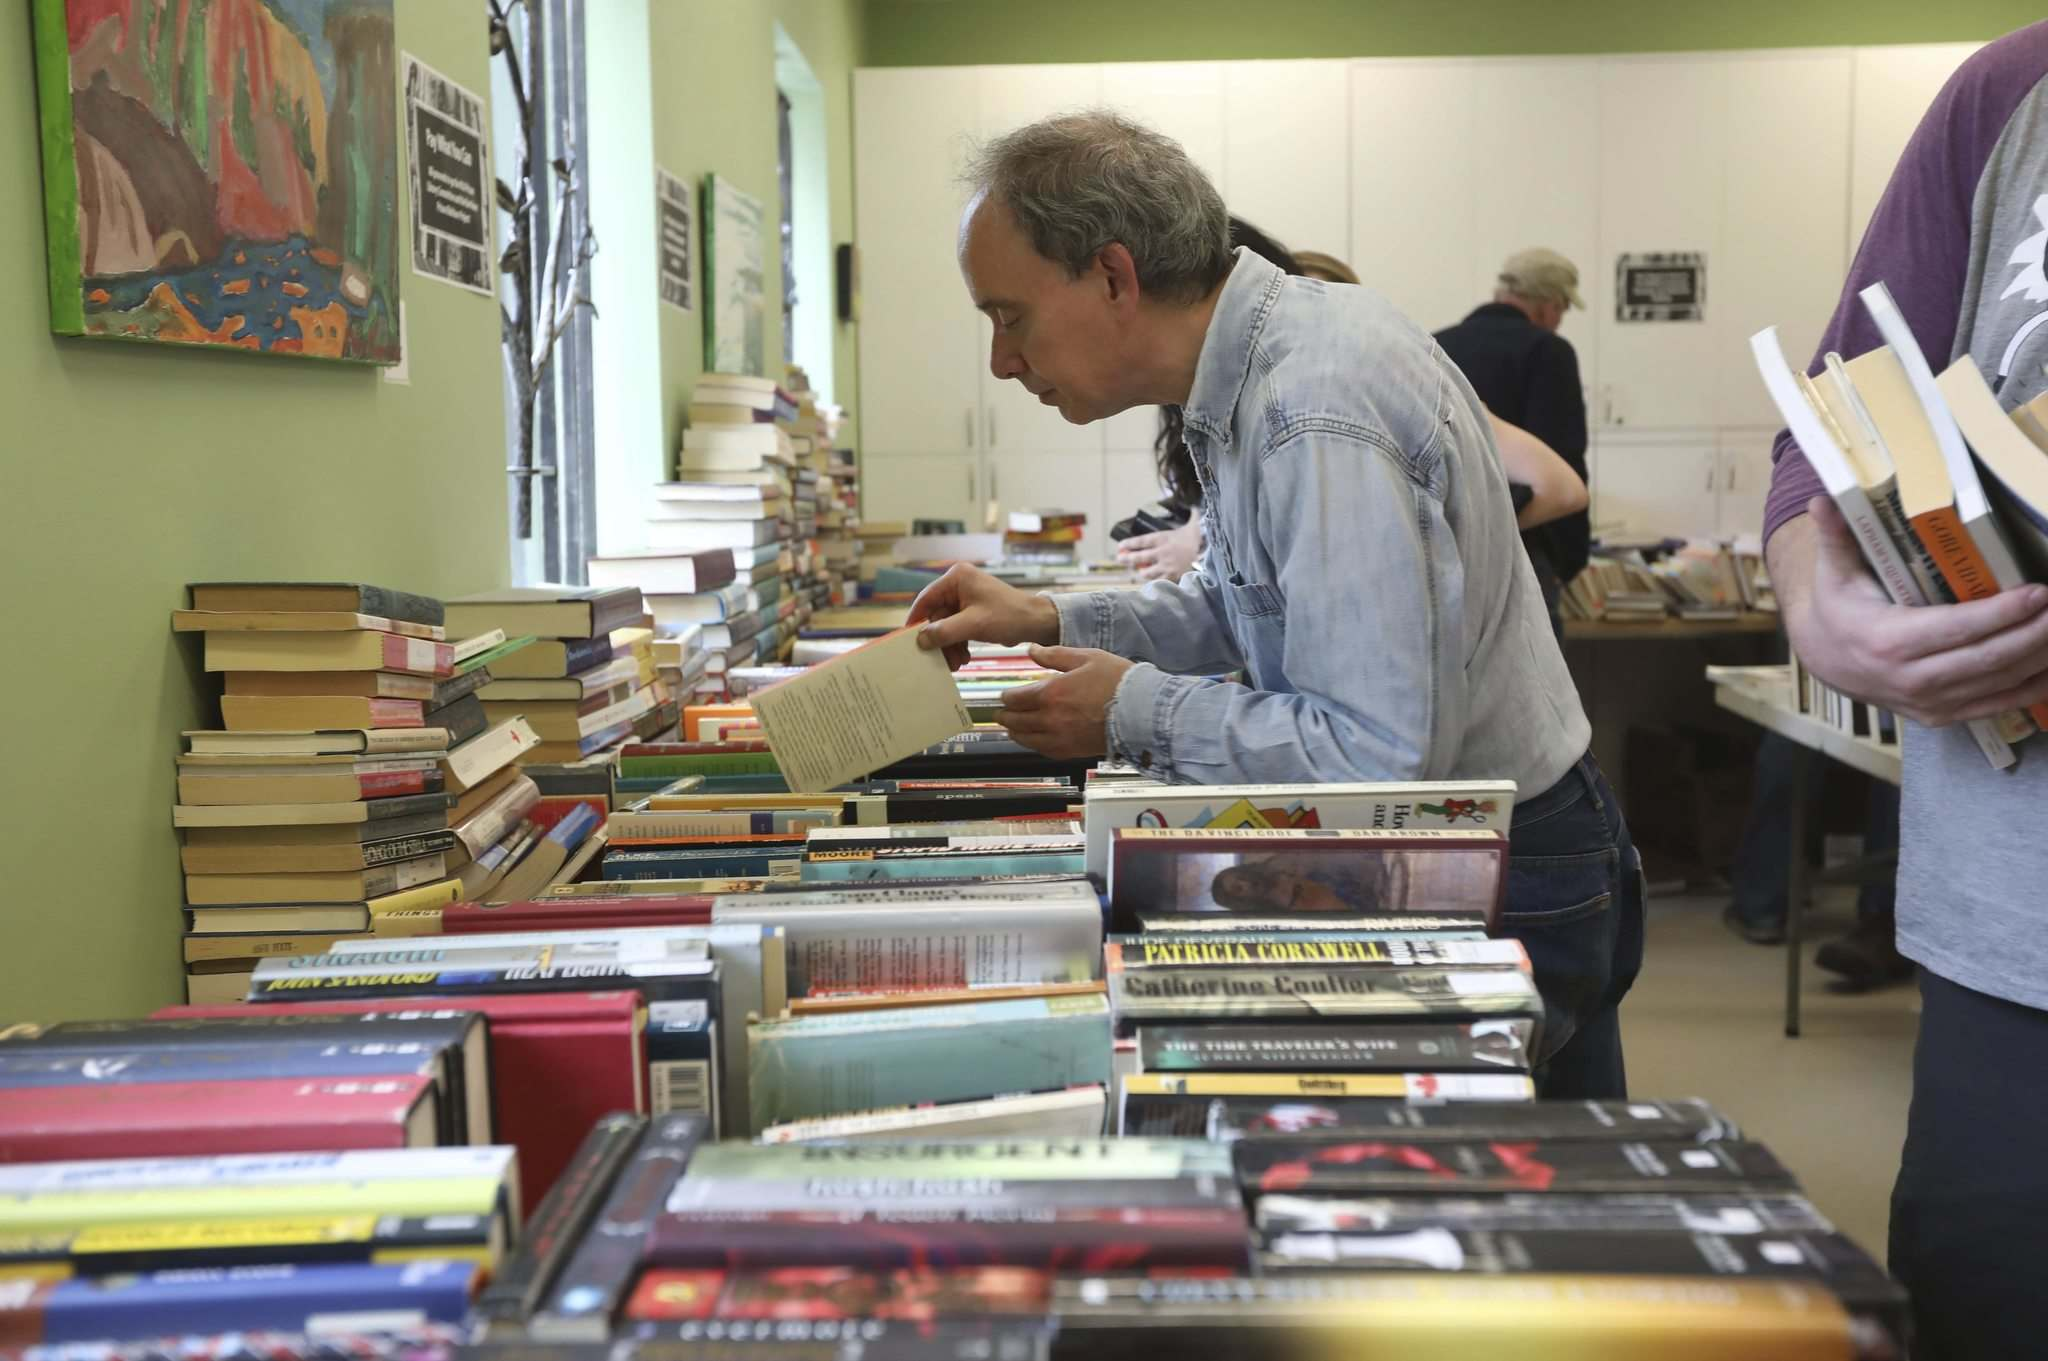 RUTH BONNEVILLE / WINNIPEG FREE PRESS</p><p>Book hunters browse through the piles of potential reading material at the Daniel McIntyre/St. Matthews Community Association on Saturday.</p>